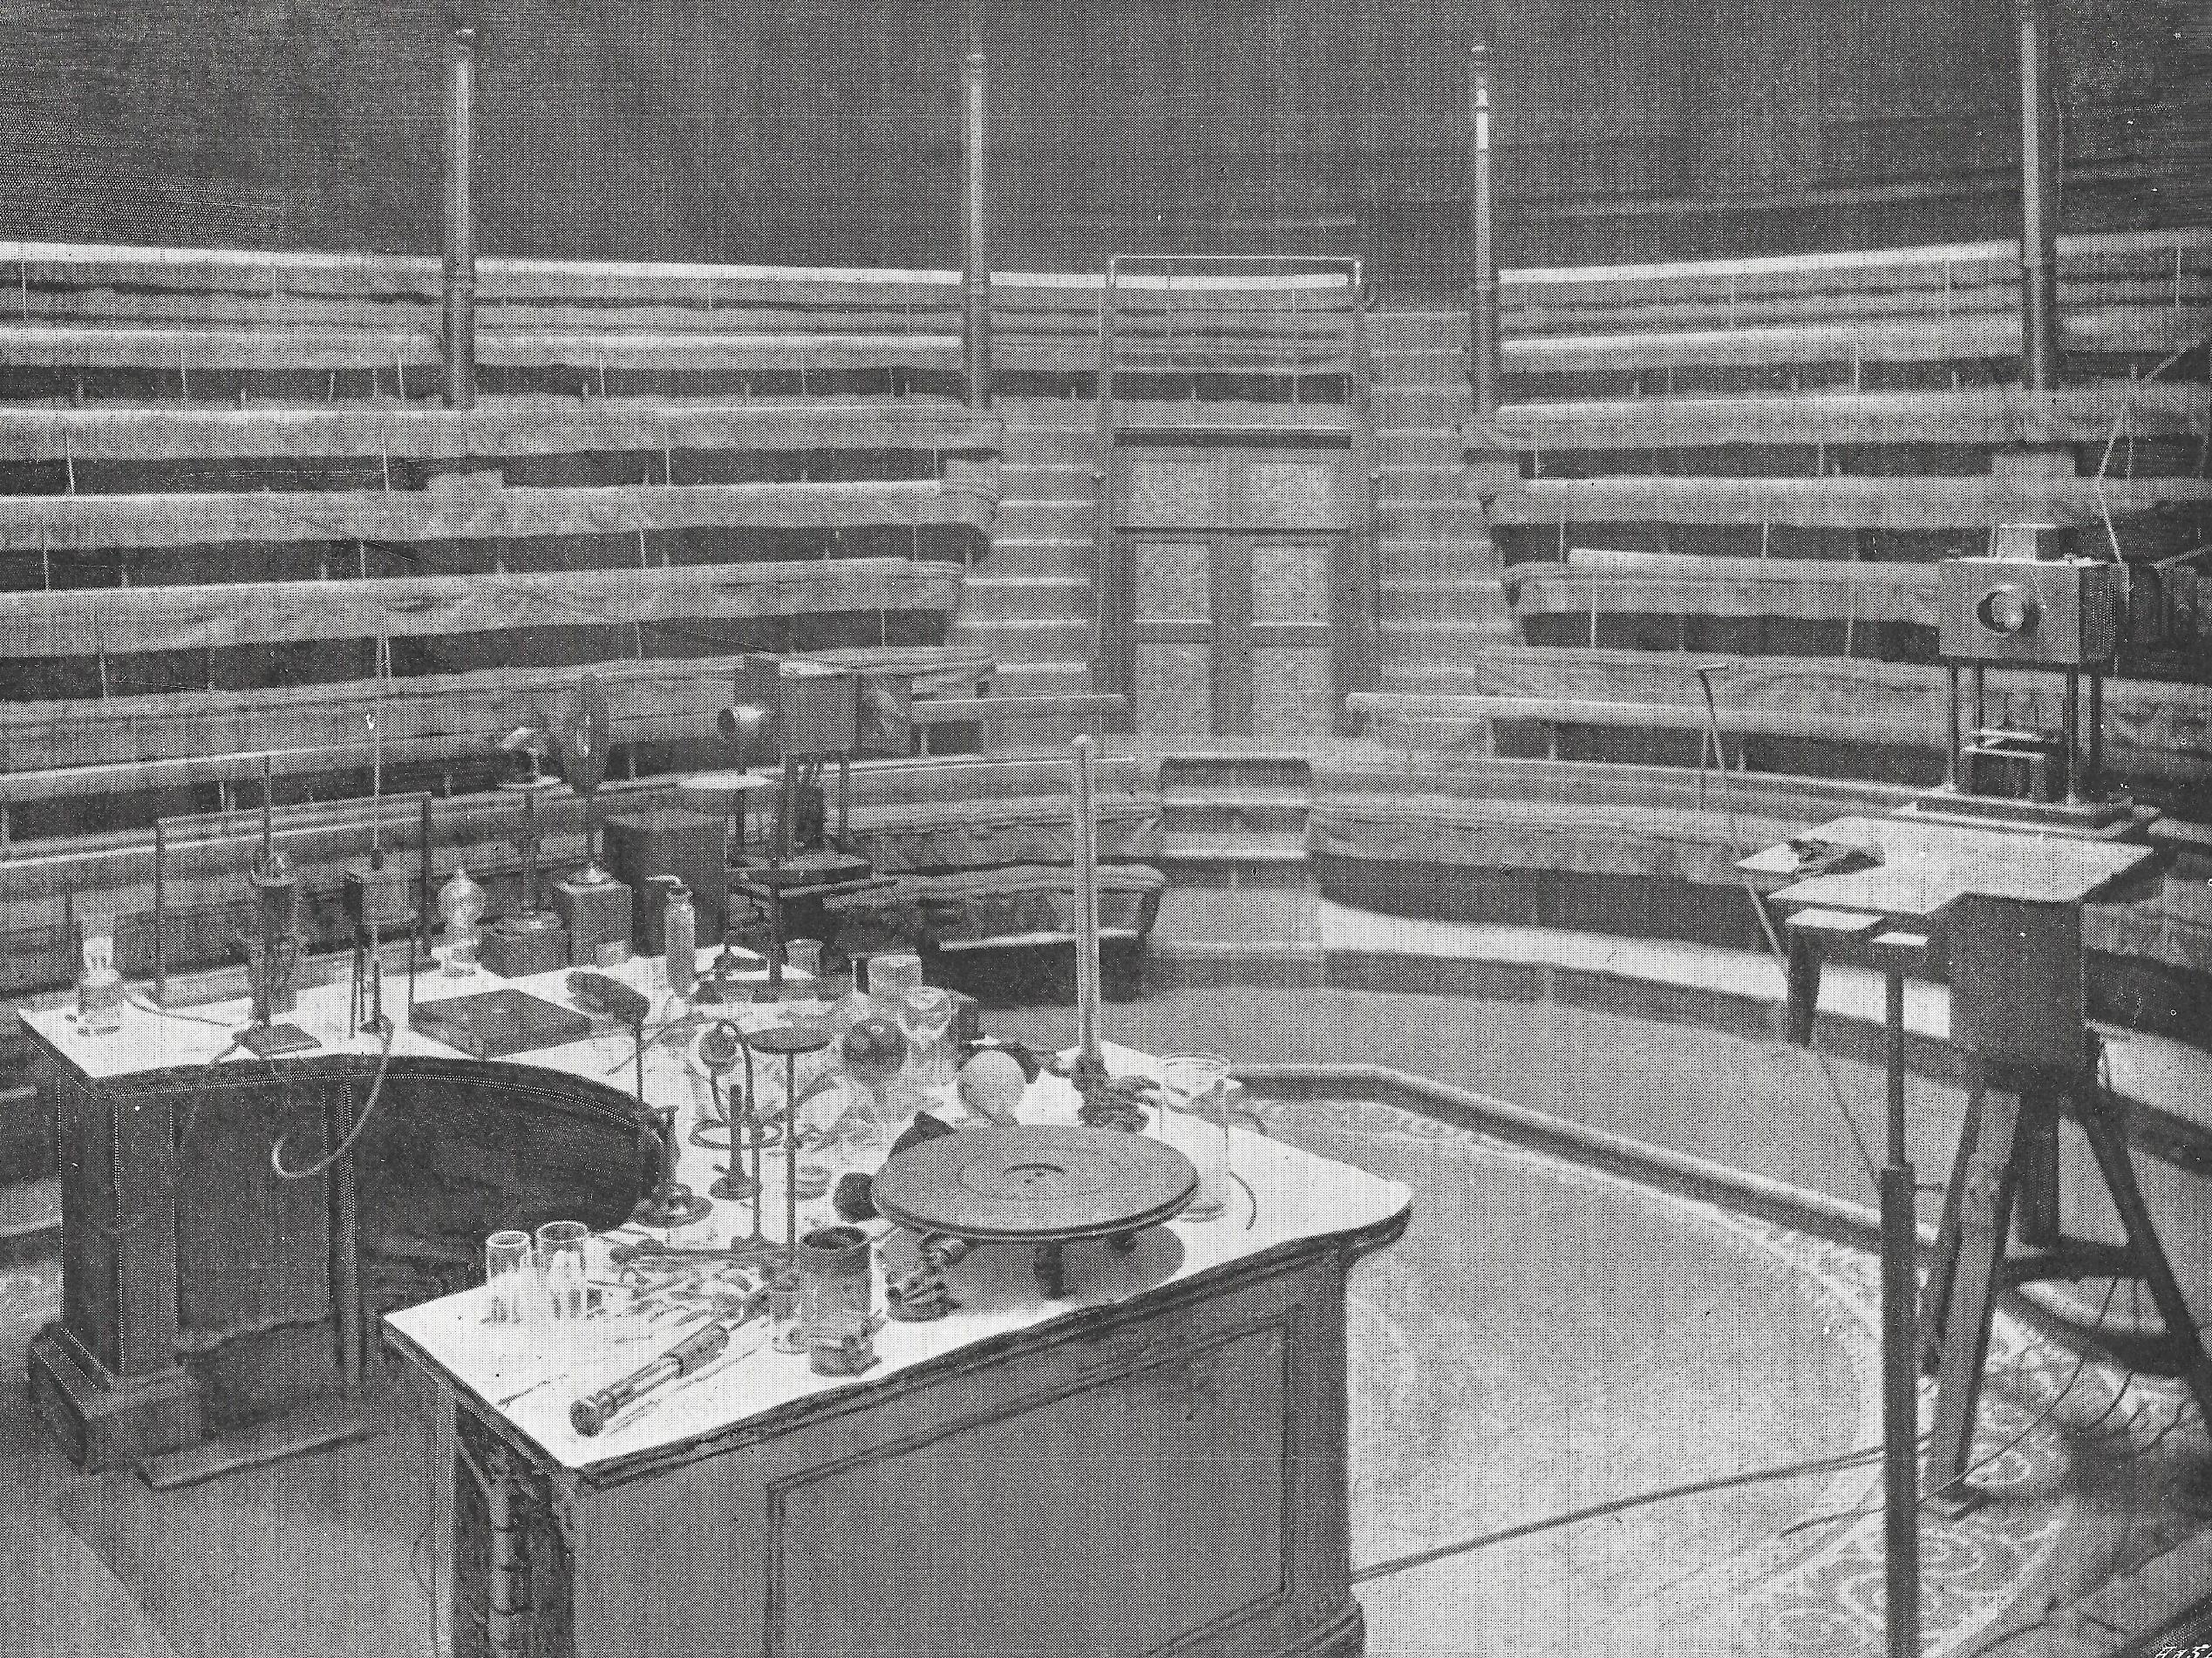 Faraday's Table in the Theatre of the Royal Institution